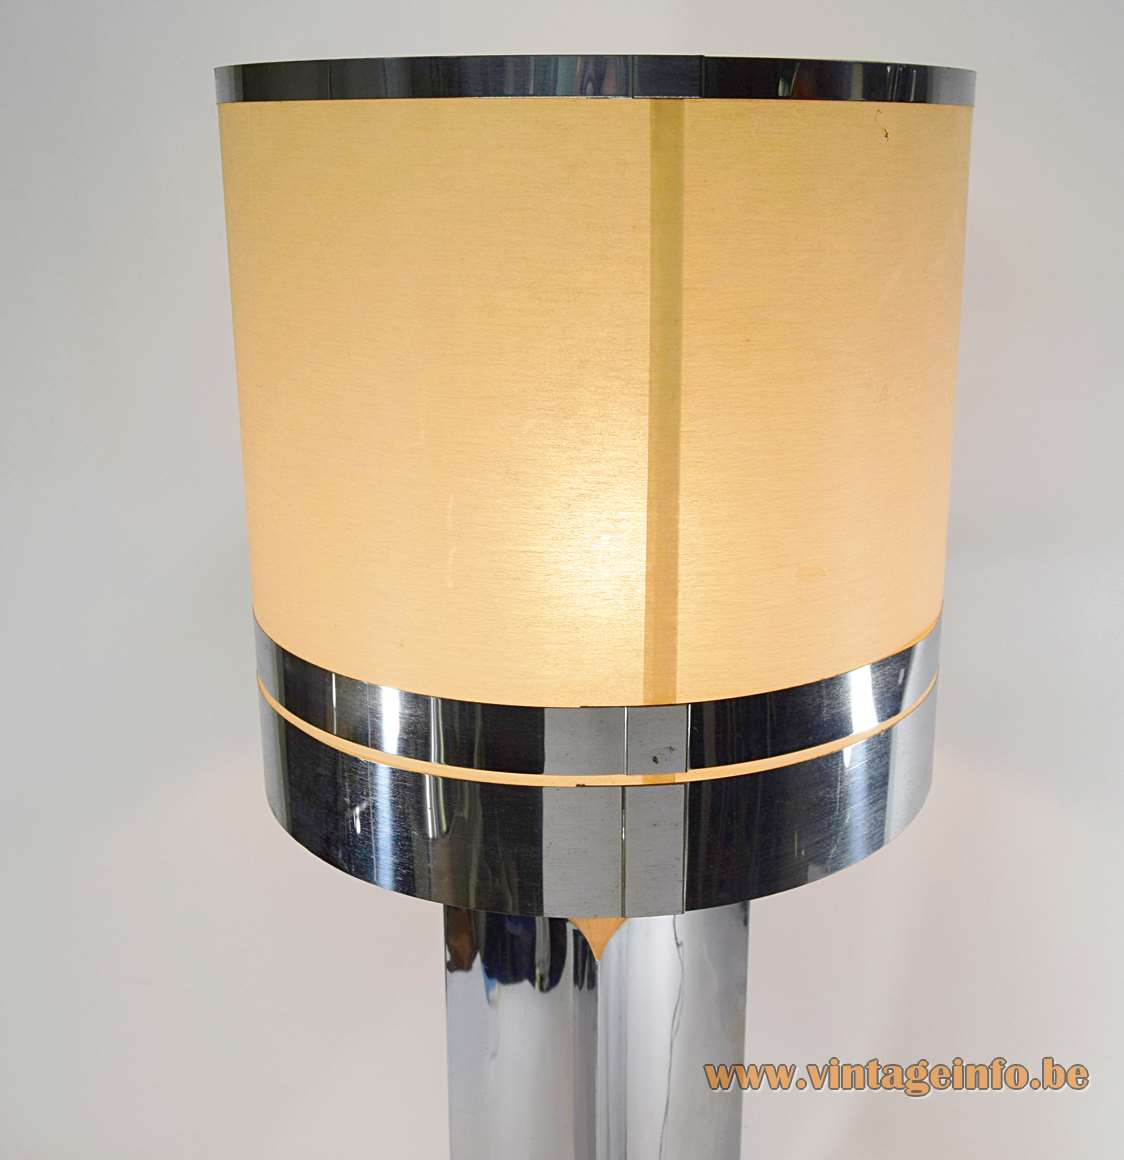 1970s concave square chrome table lamp metal base polyester lampshade chrome rings 1960s 1970s Italy